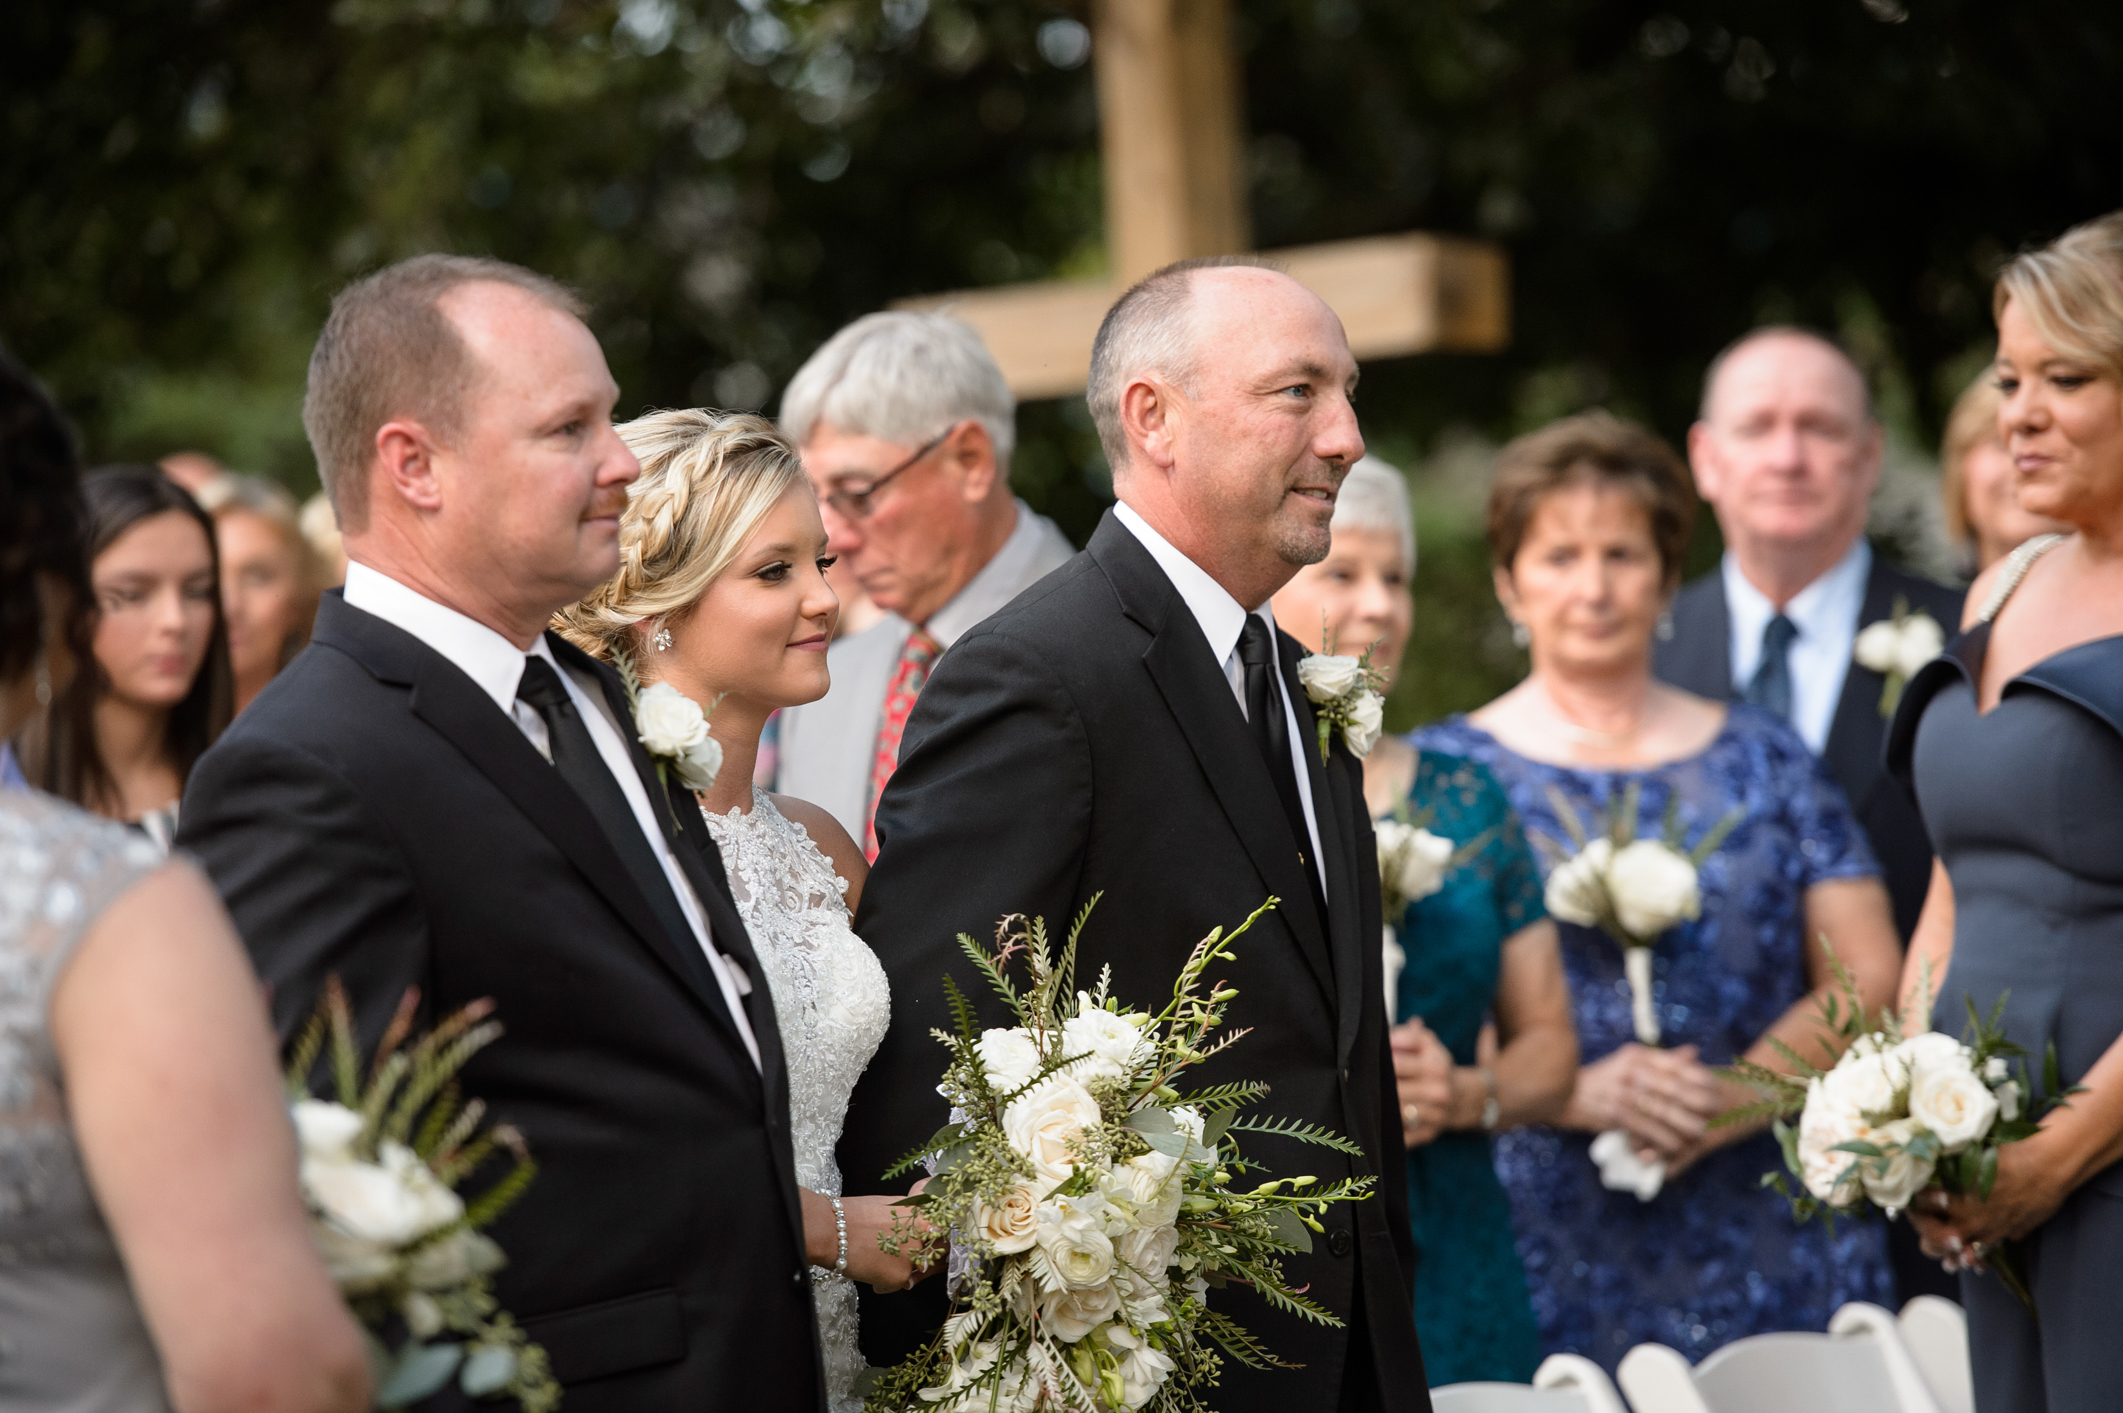 Perry Georgia Wedding-1320.JPG